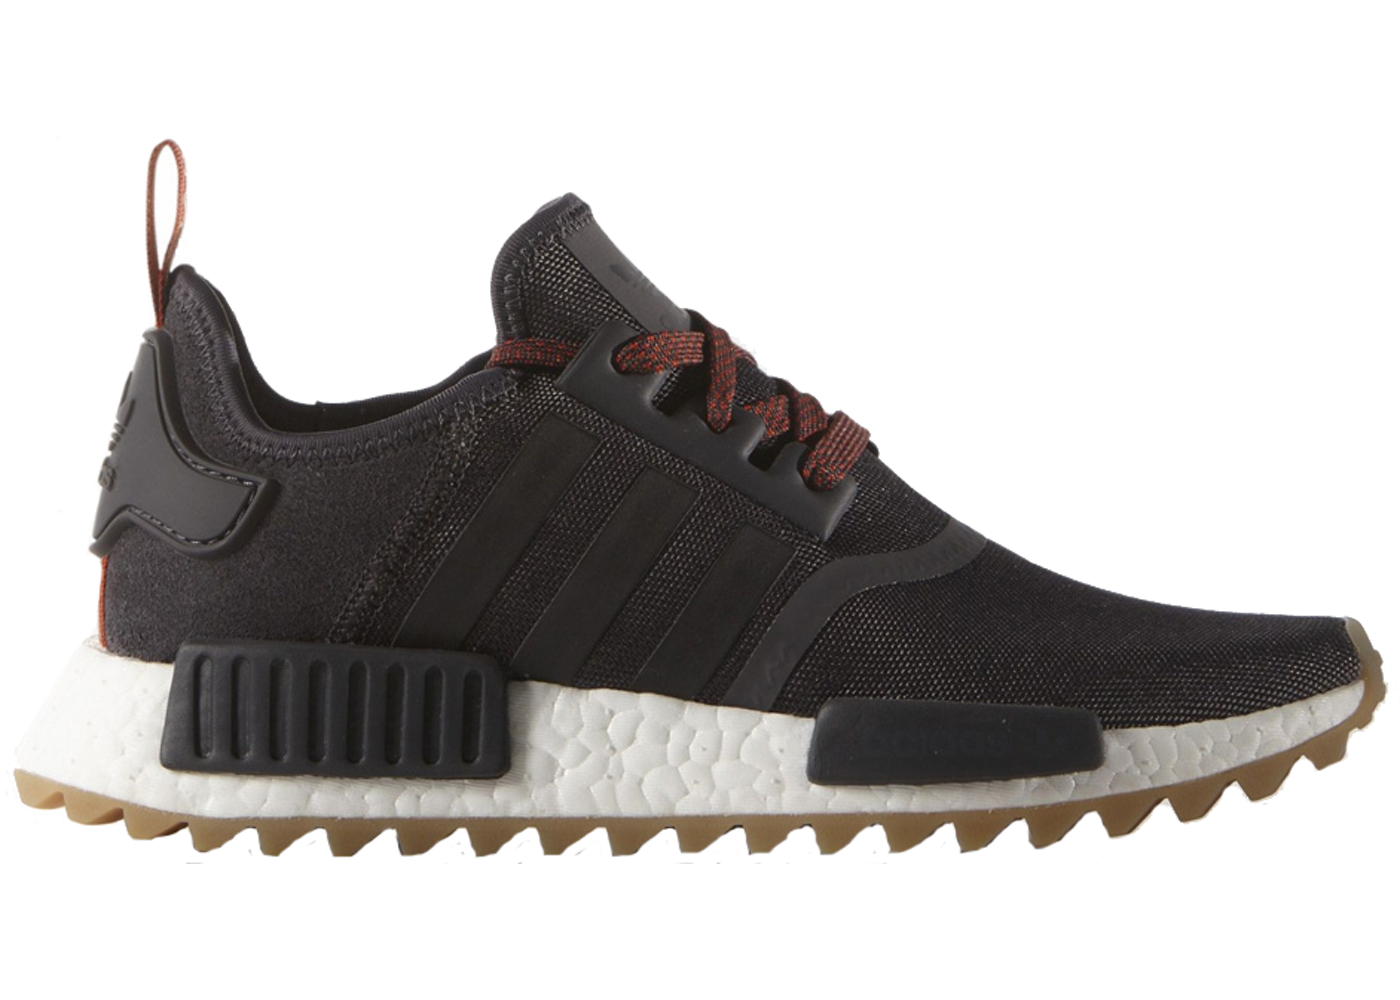 Adidas NMD Chukka Black White Red Blue